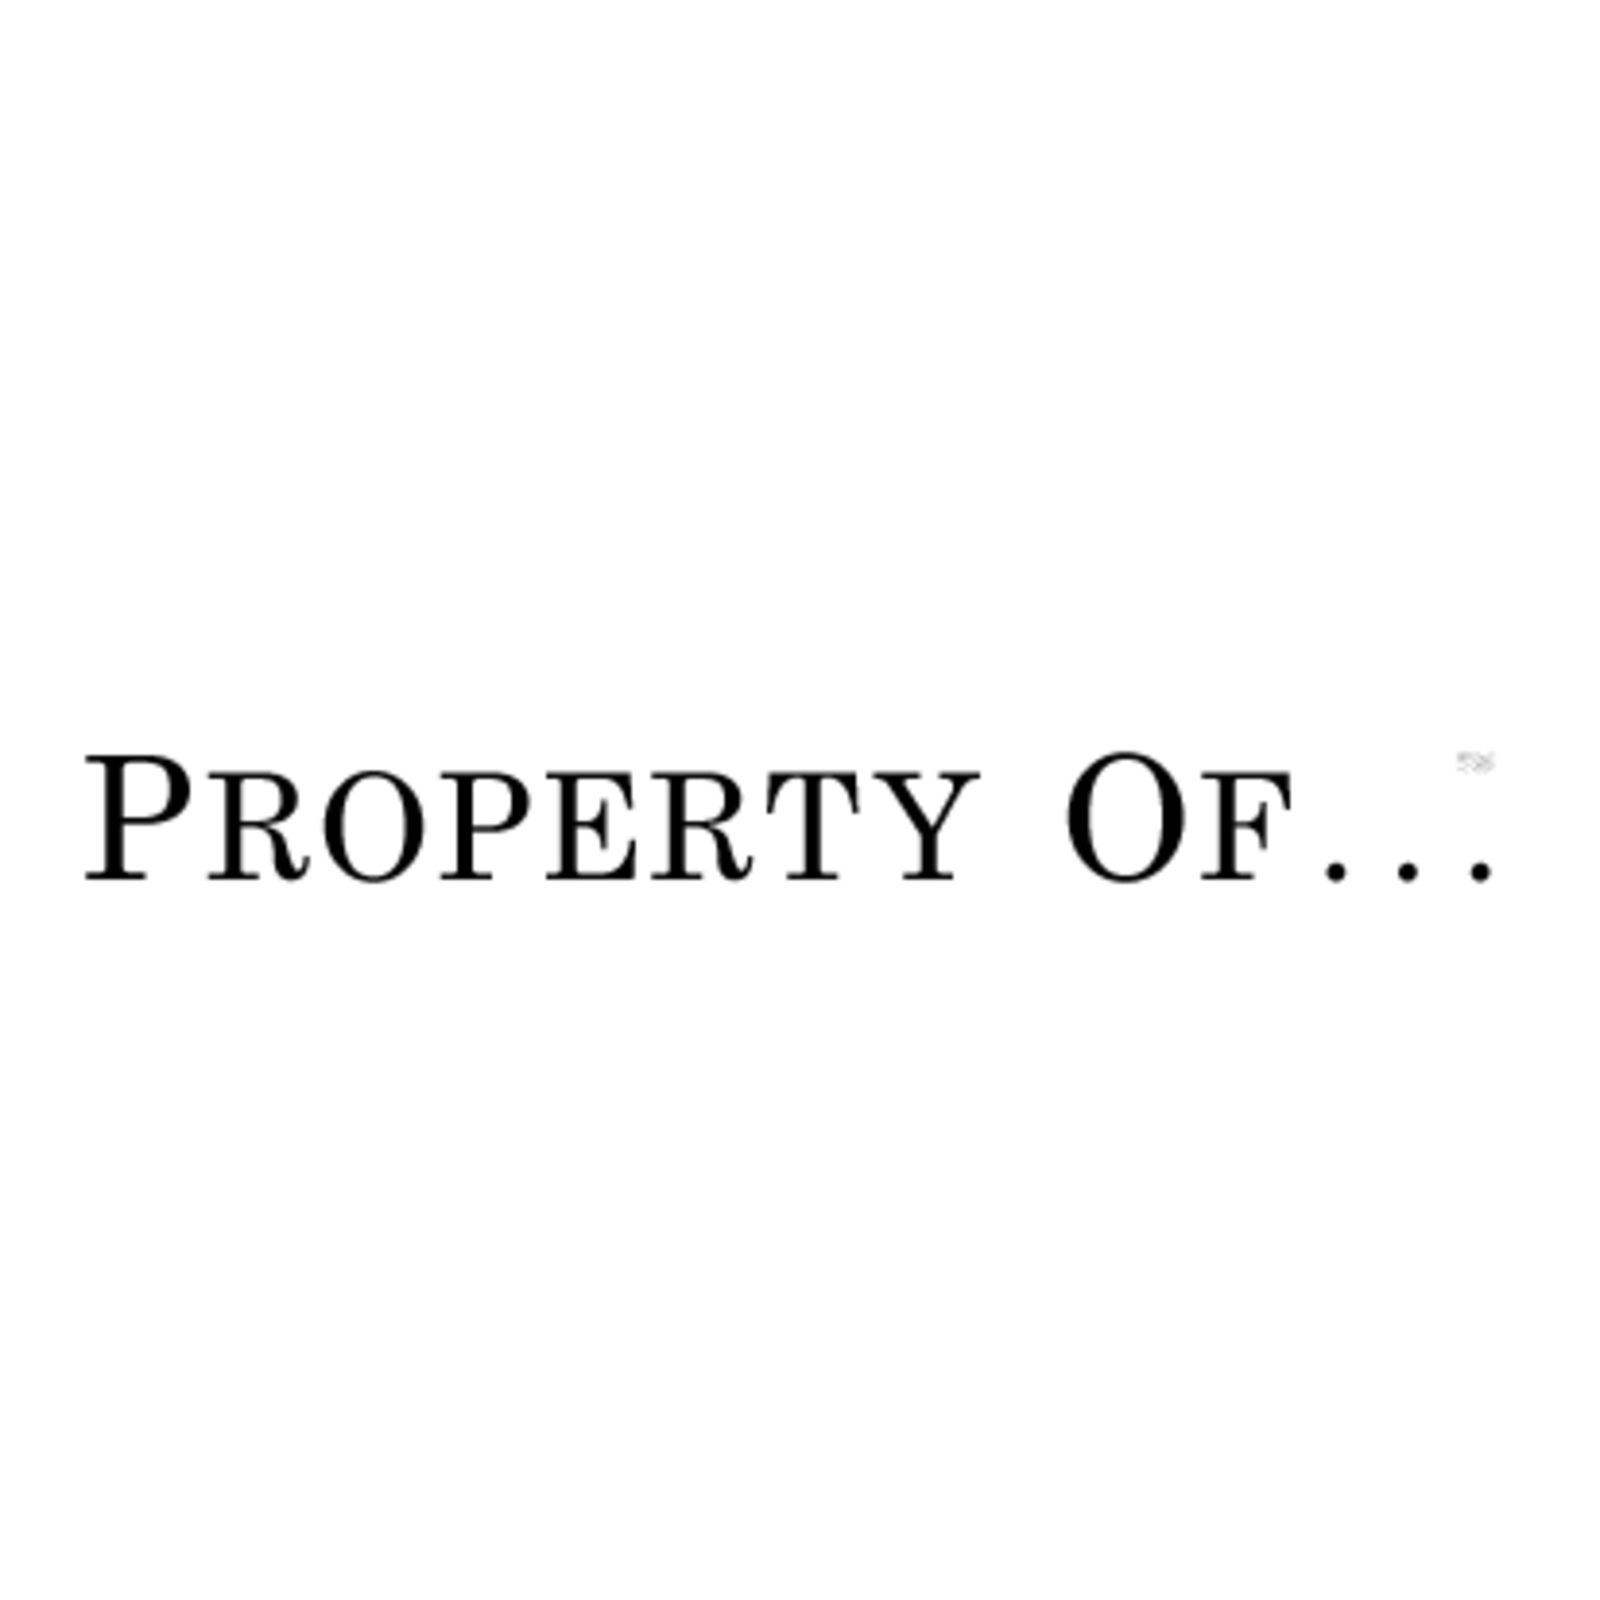 property of...